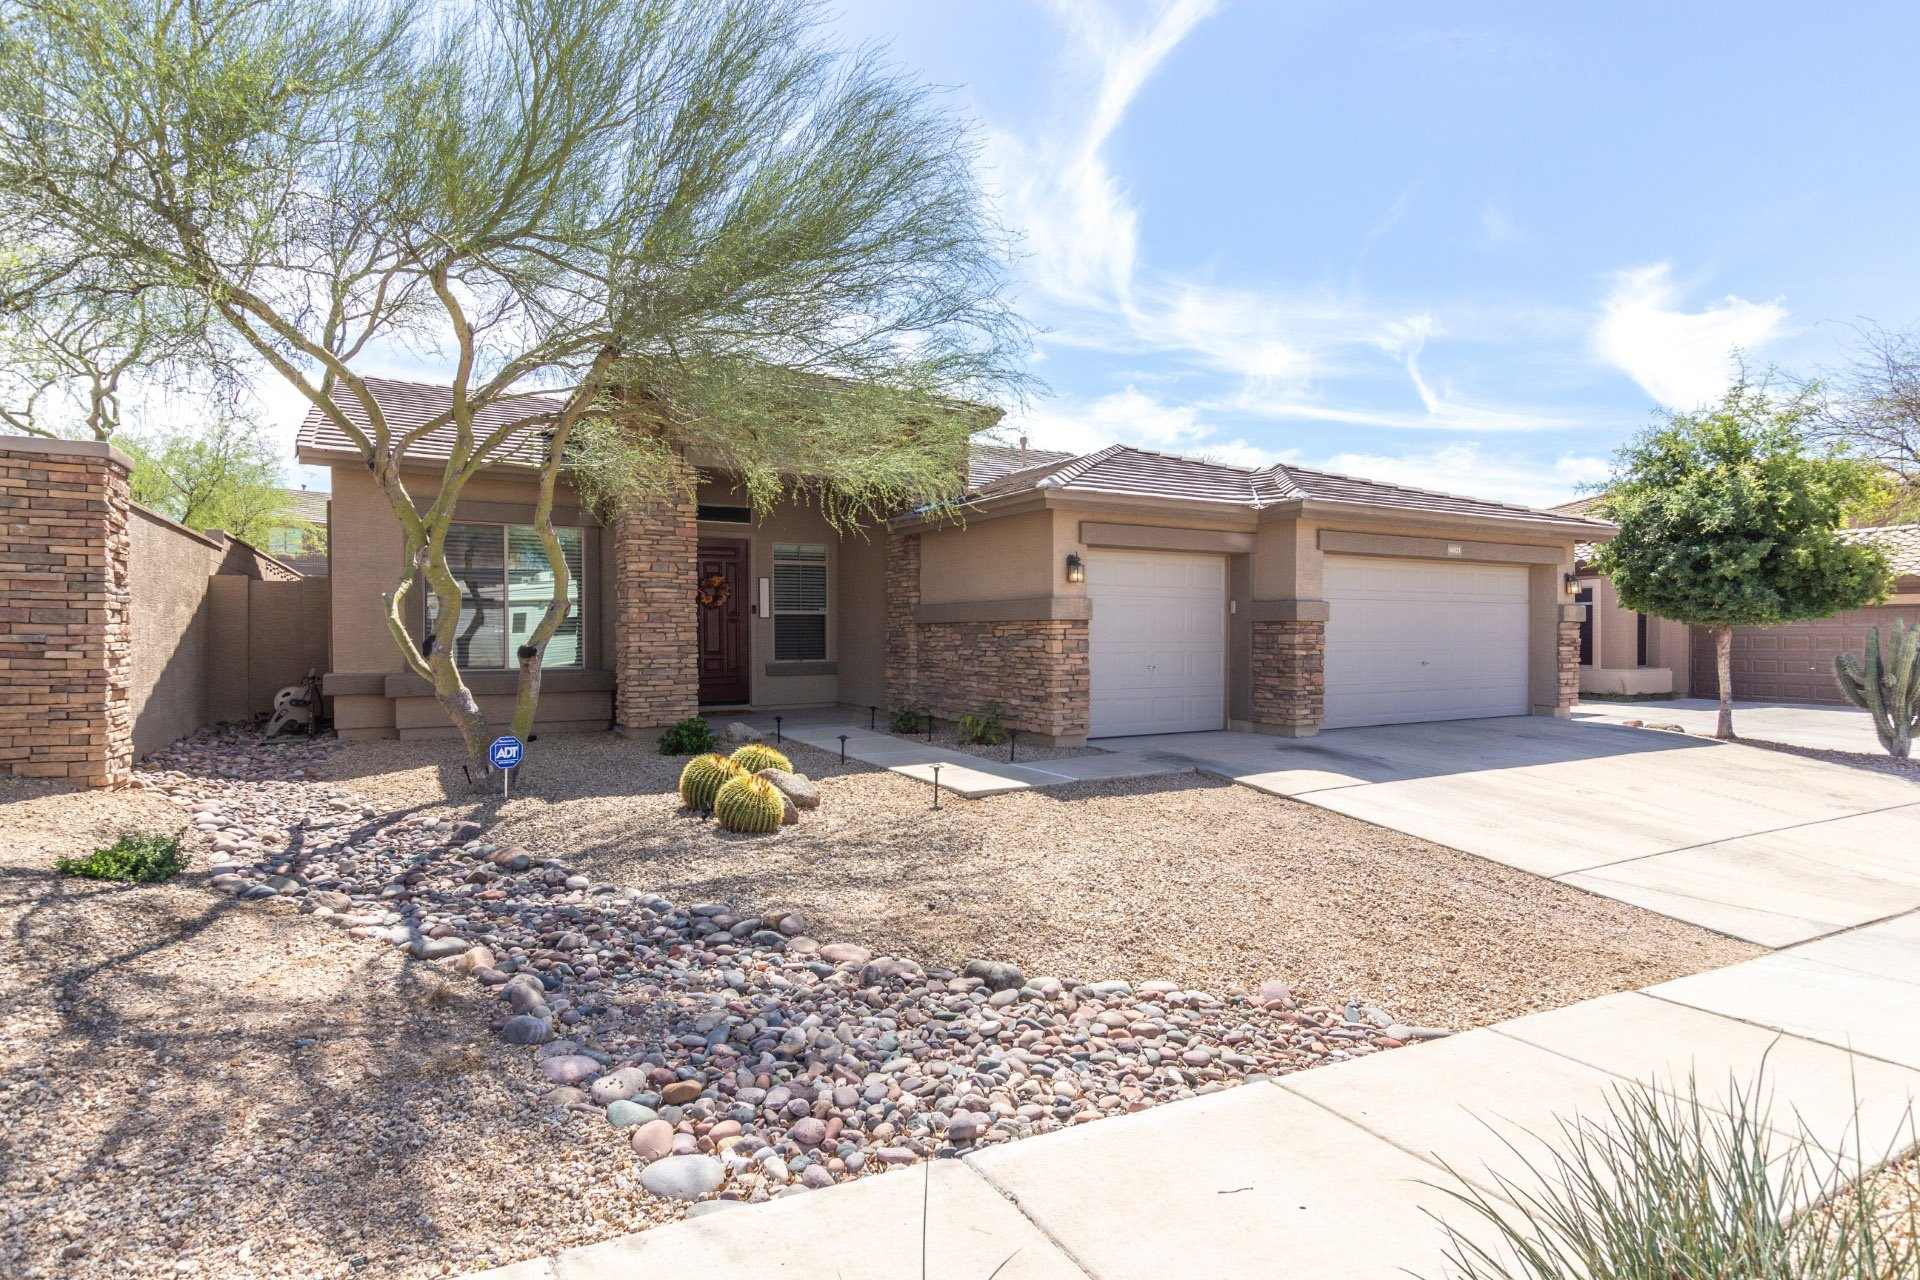 A Phoenix Home as an Investment?